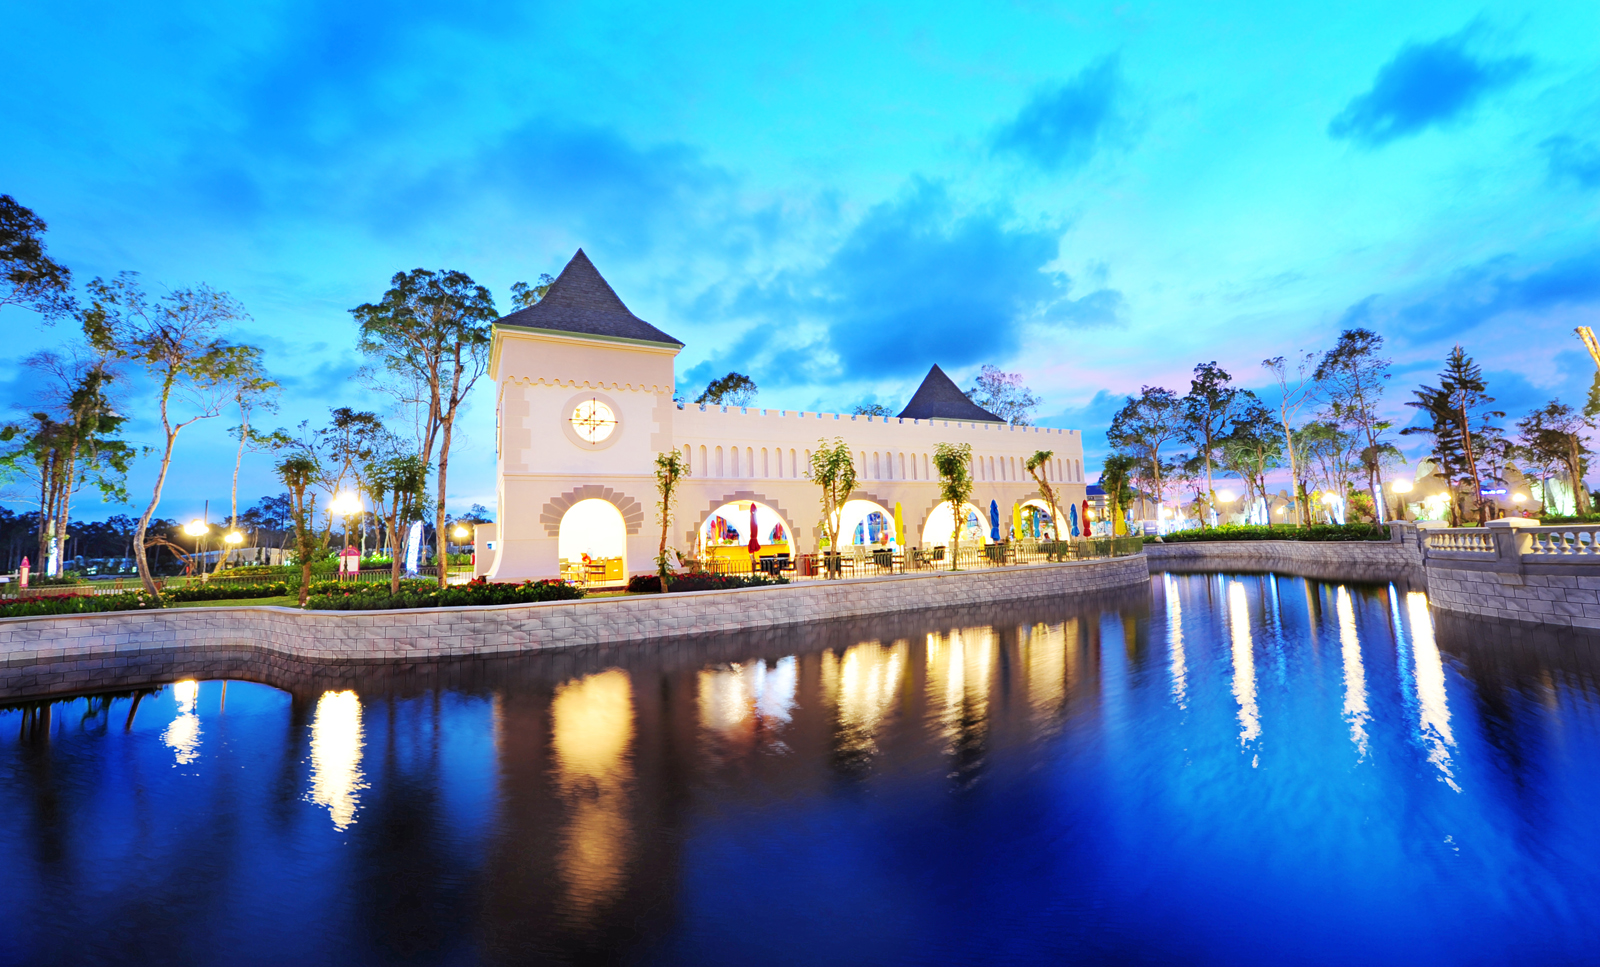 vinpearl-land-phu-quoc